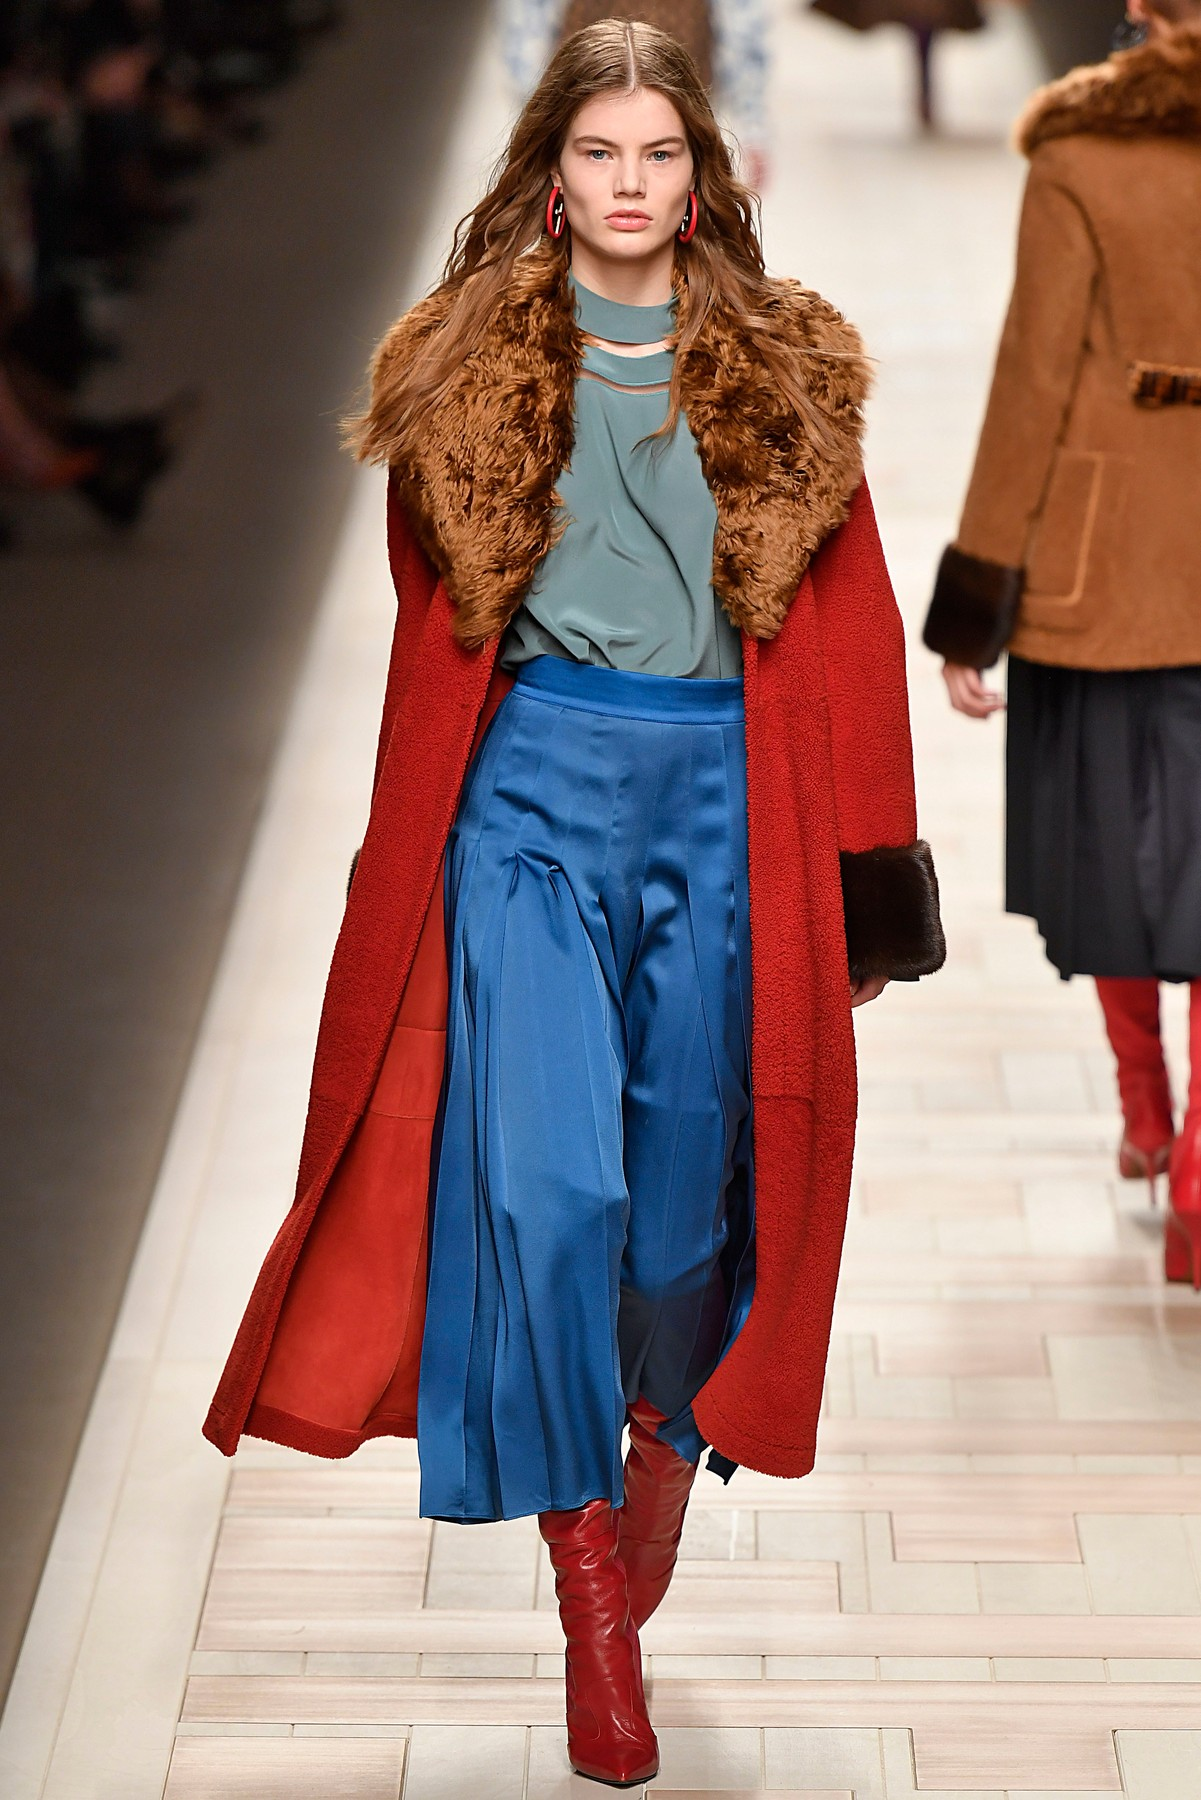 Model walking the runway at the Fendi show during Milan Fashion Week Fall/Winter 2017/18 on February 23, 2017 in Milan, Italy., Image: 322106781, License: Rights-managed, Restrictions: EDITORIAL USAGE ONLY, all other usage only after written permission., Model Release: no, Credit line: Profimedia, SIPA USA